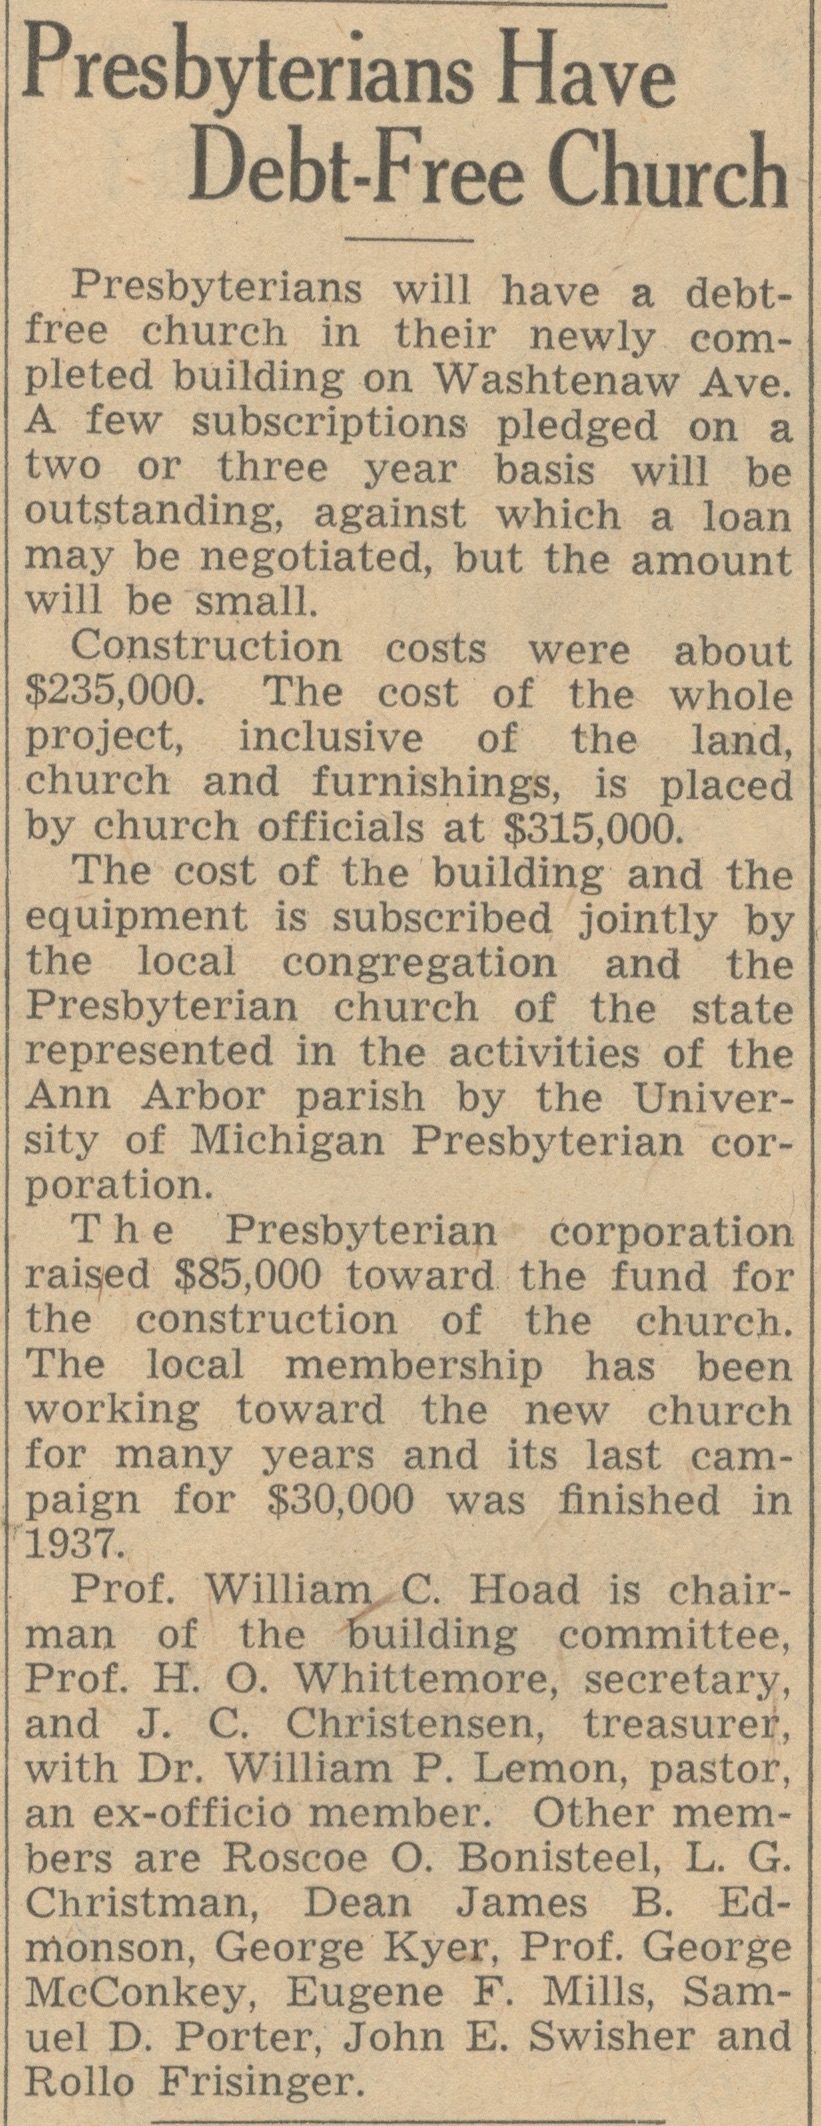 Presbyterians Have Debt-Free Church image